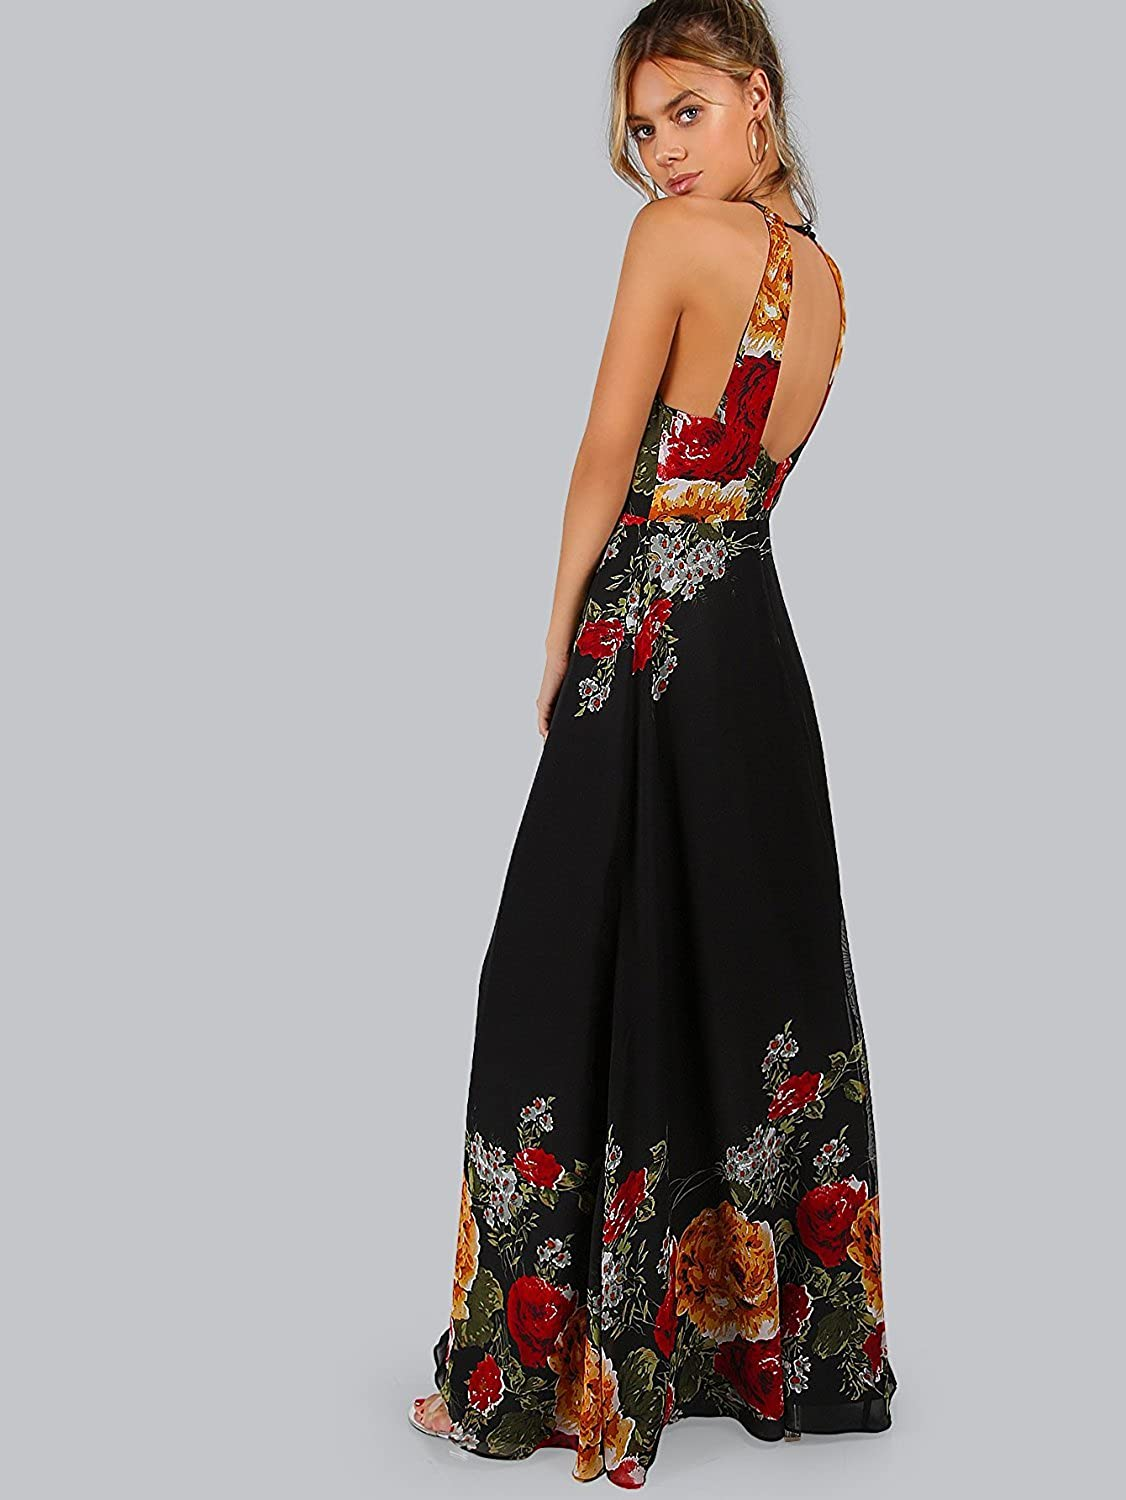 1fa2d6c7e4 Amazon.com: Floerns Women's Sleeveless Halter Neck Vintage Floral Print  Maxi Dress: Clothing